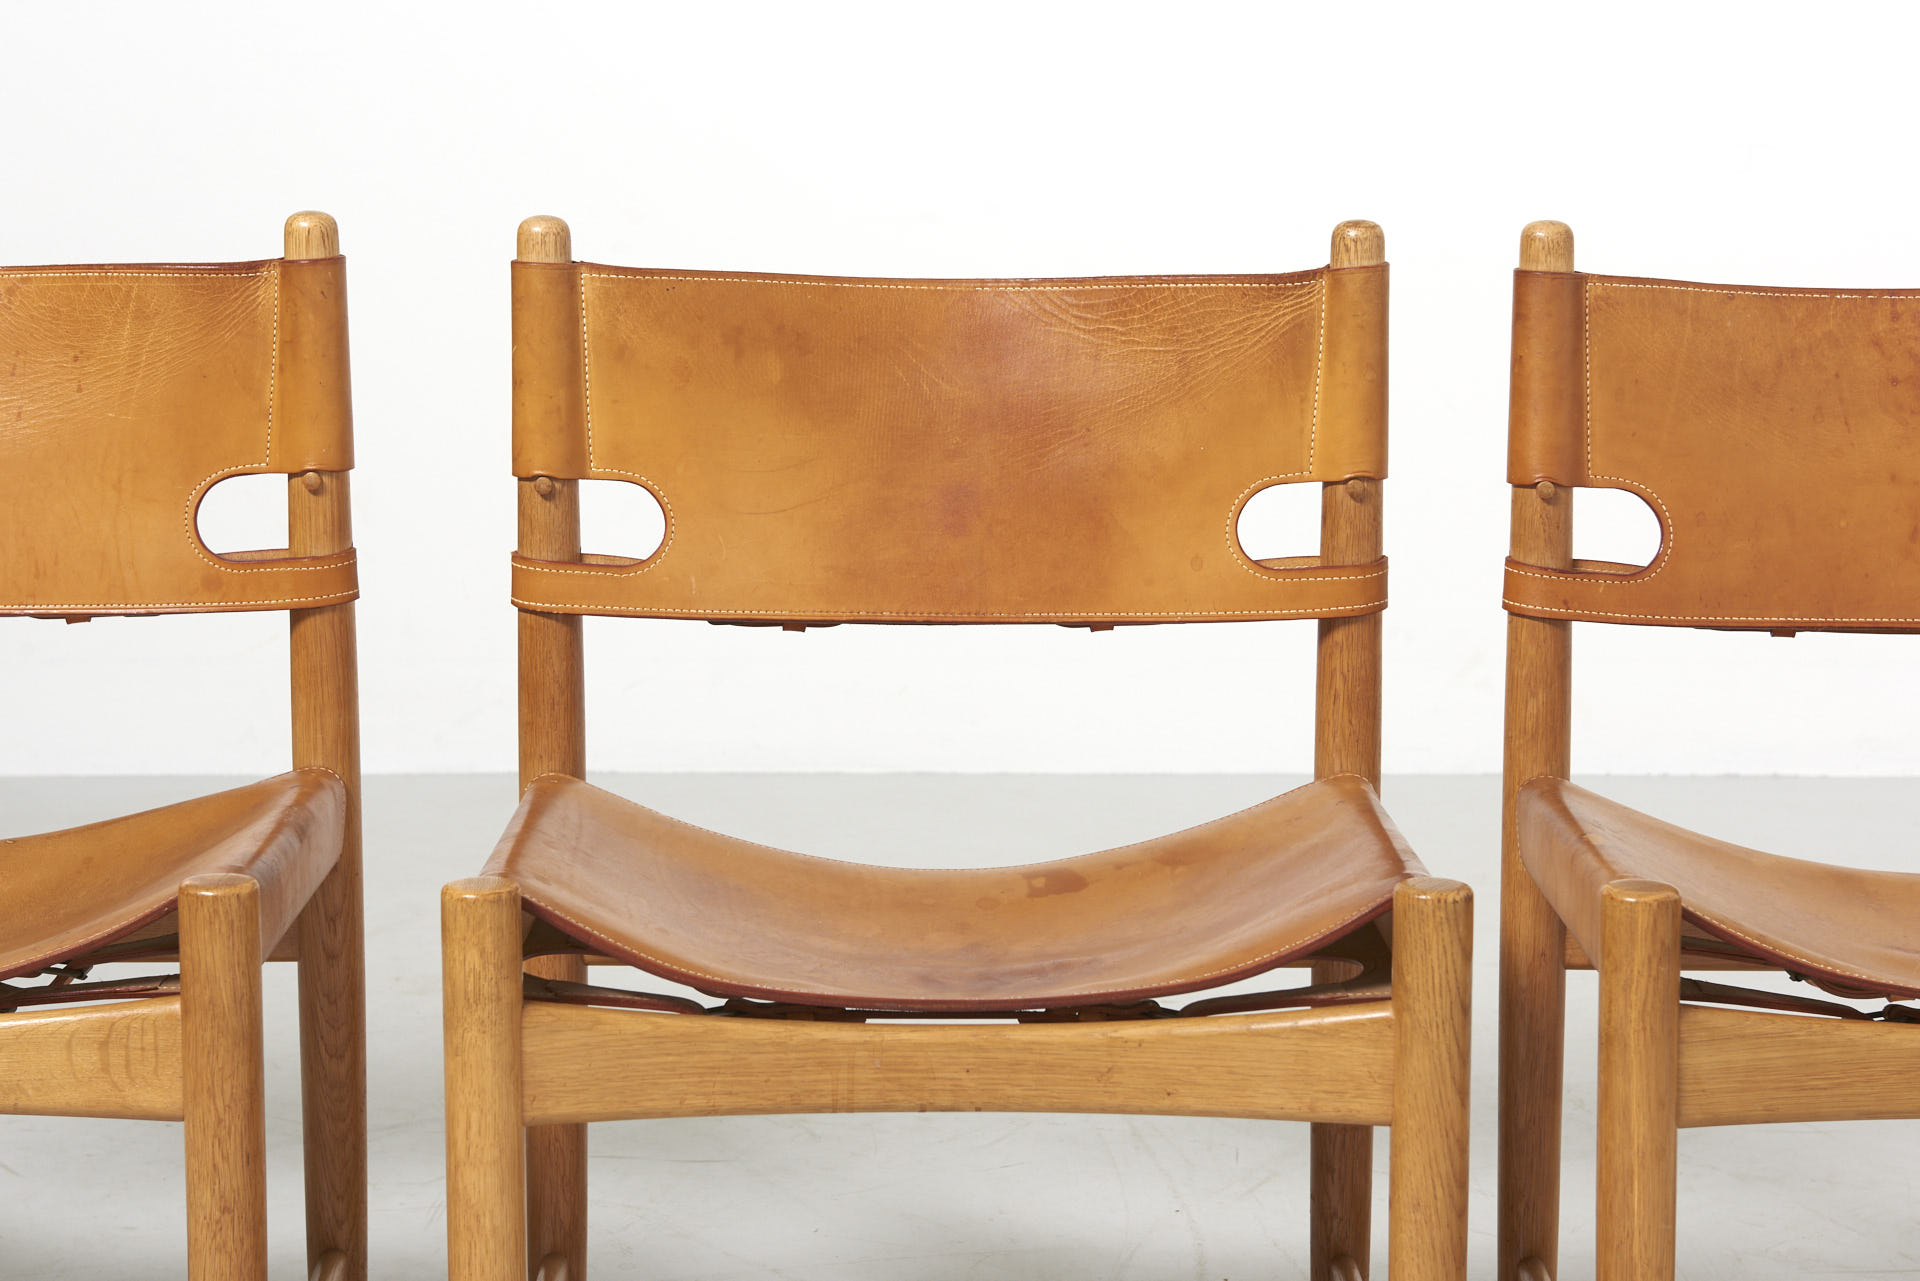 modestfurniture-vintage-2669-borge-mogensen-spanish-dining-chairs-fredericia-model-3237-323807